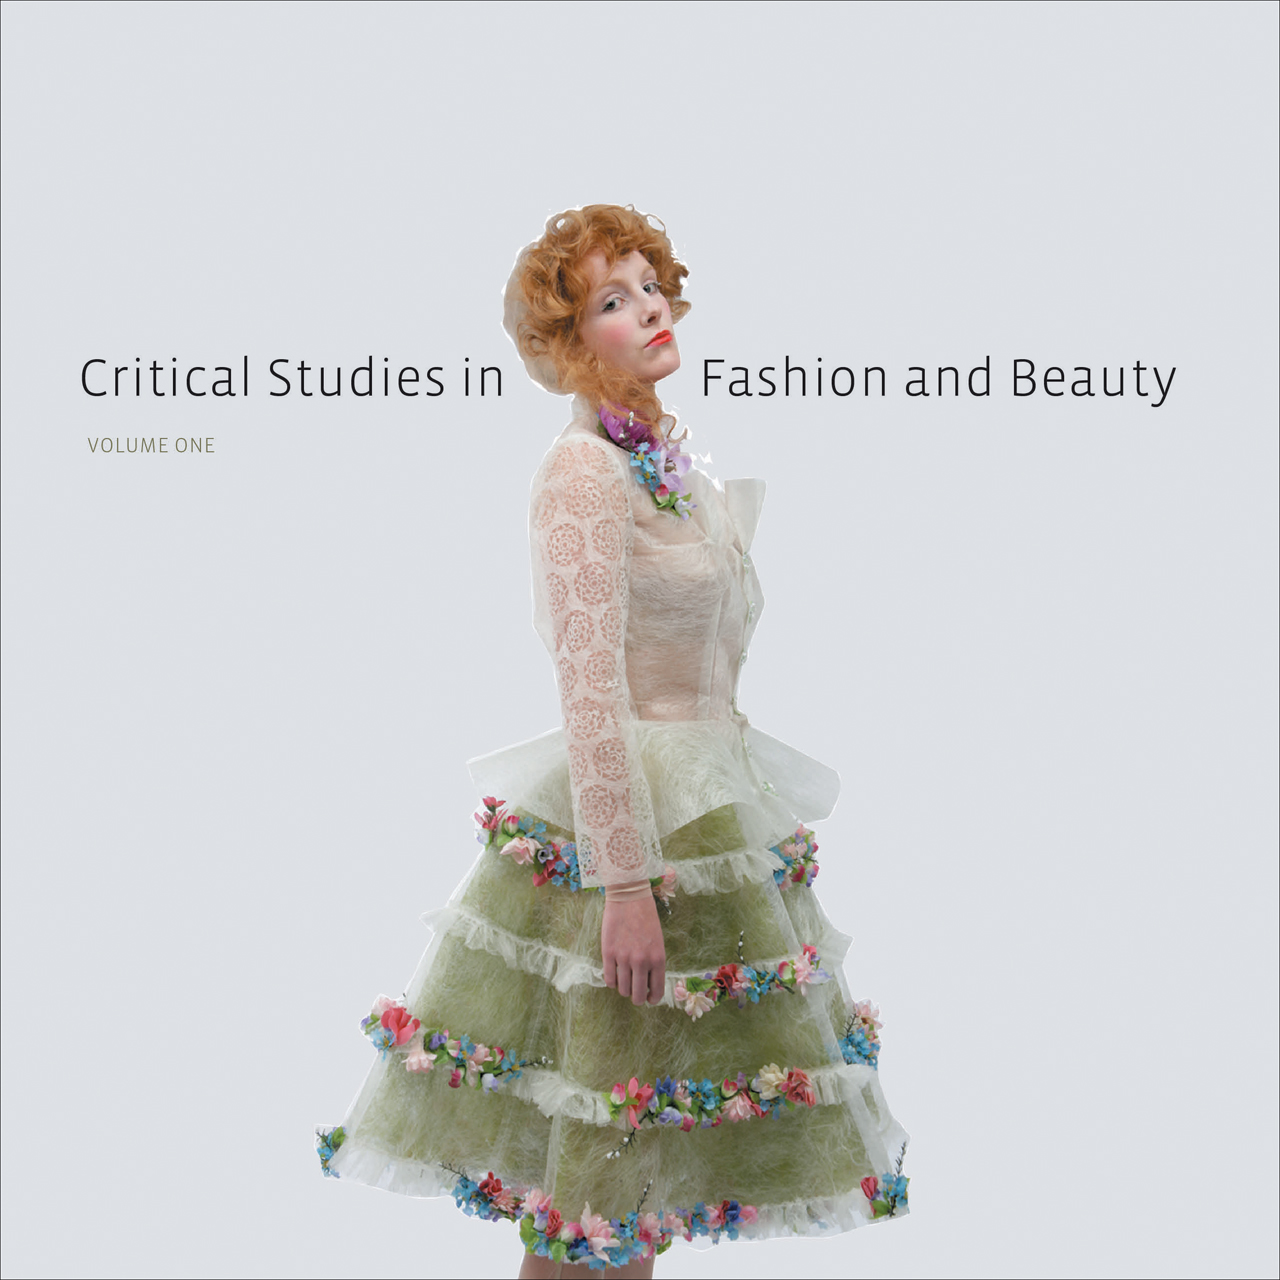 Critical Studies in Fashion and Beauty: Volume One